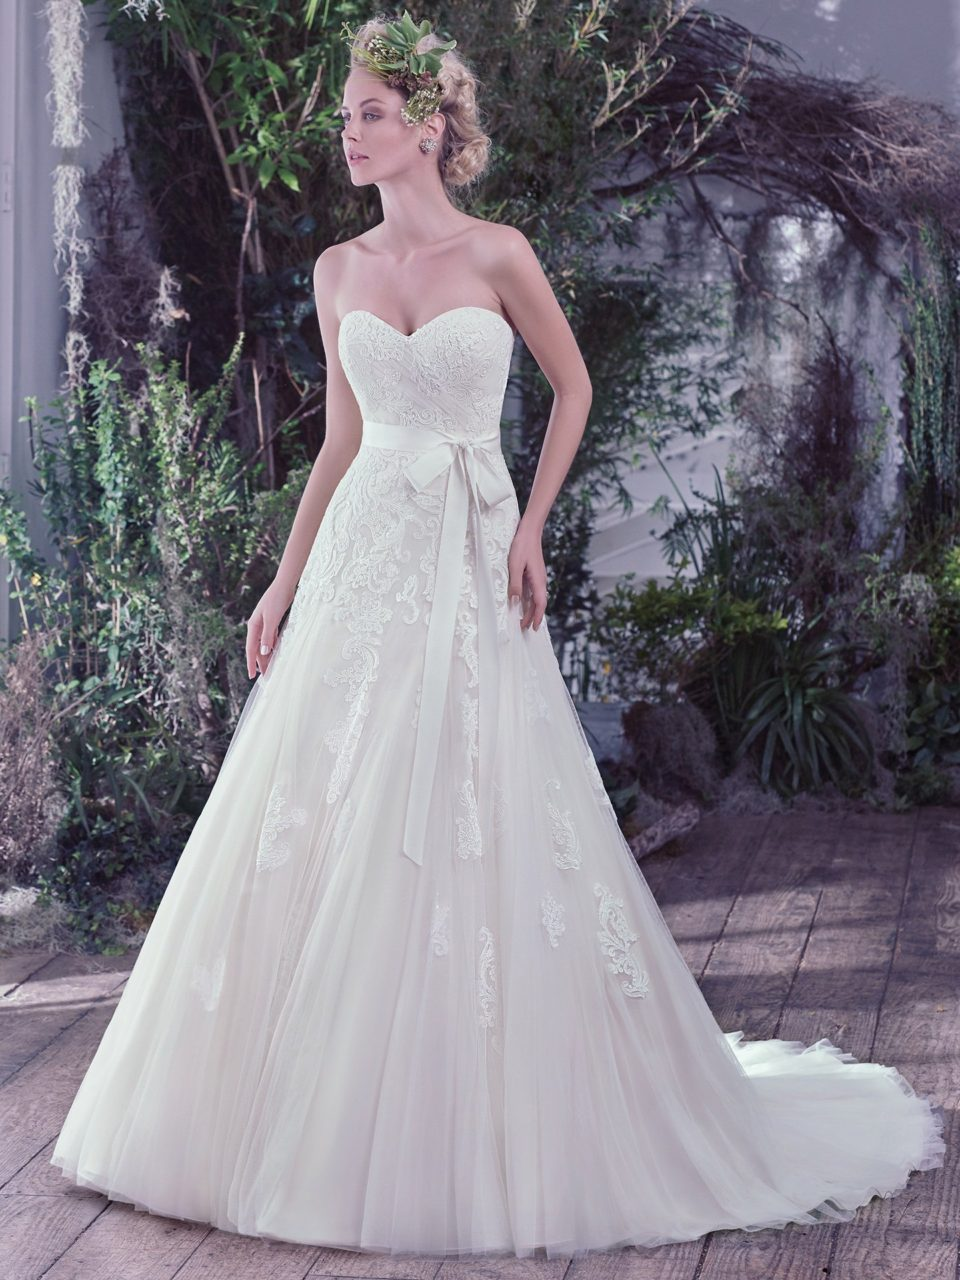 Maggie-Sottero-Lindsey-Lisette-2016-Collection